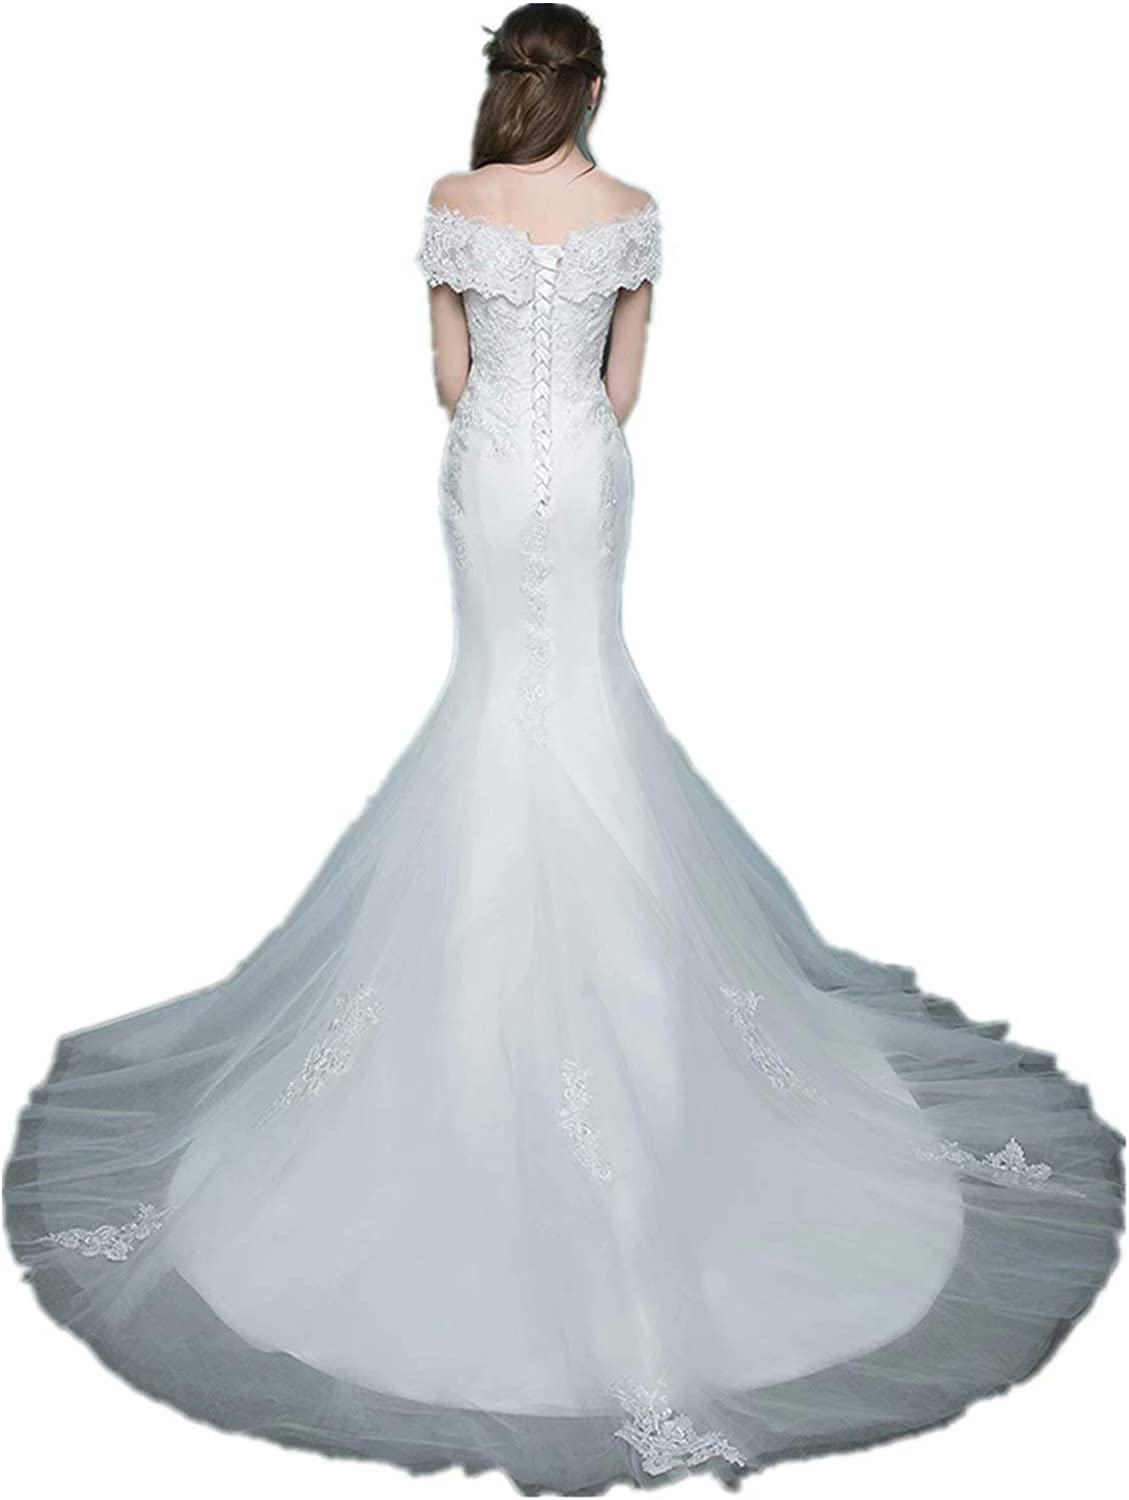 Fankeshi Off The Shoulder Appliques Mermaid Bridal Gowns with Train Wedding Dresses